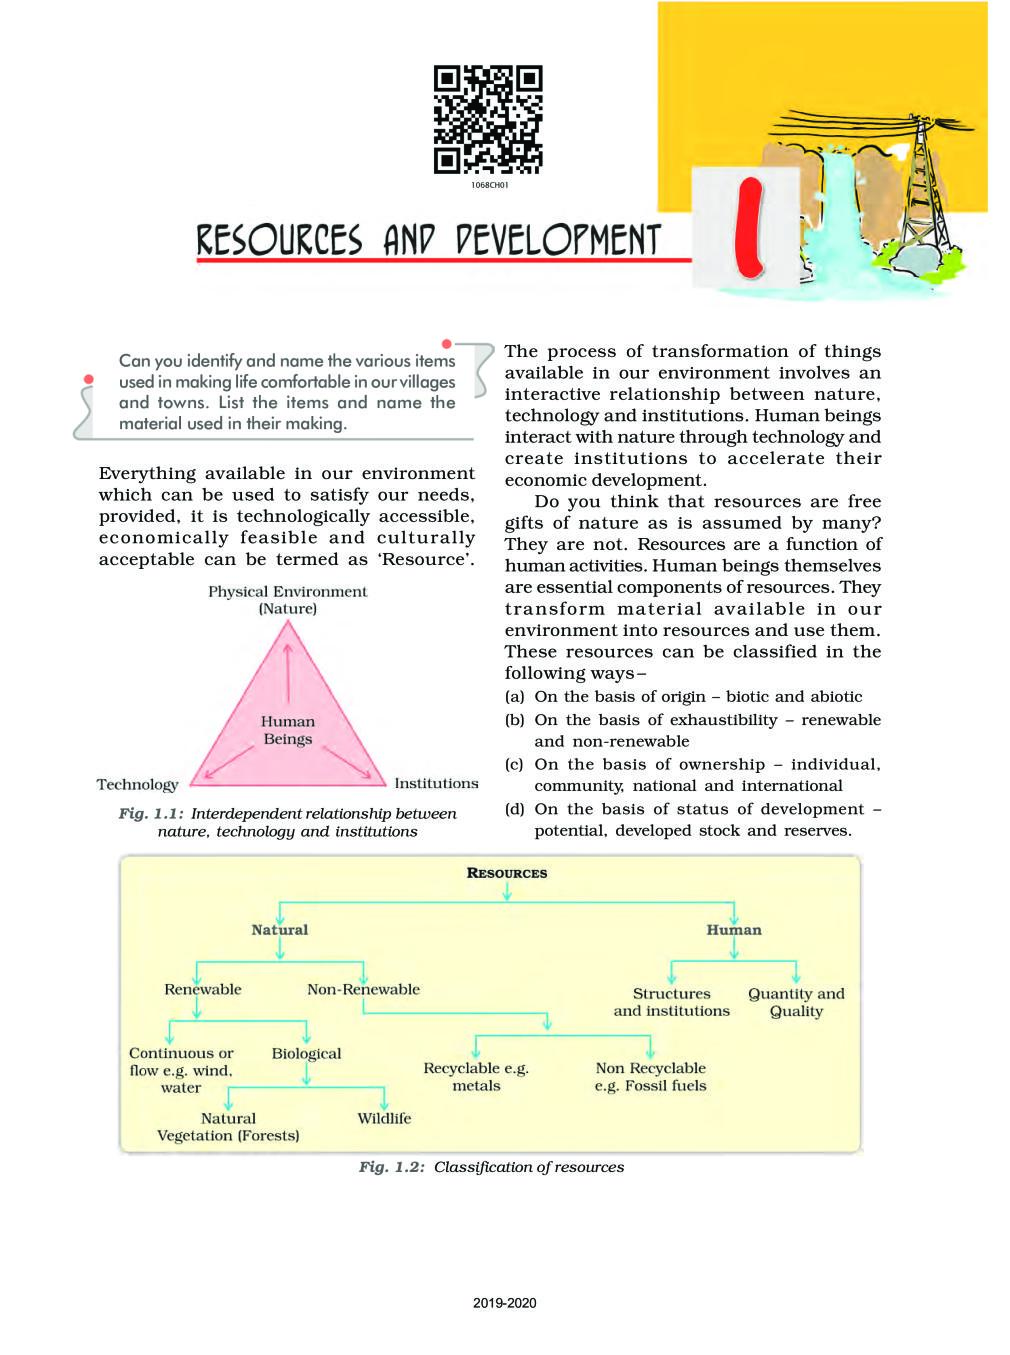 NCERT Book Class 10 Social Science (Geography) Chapter 1 Resources and Development - Page 1